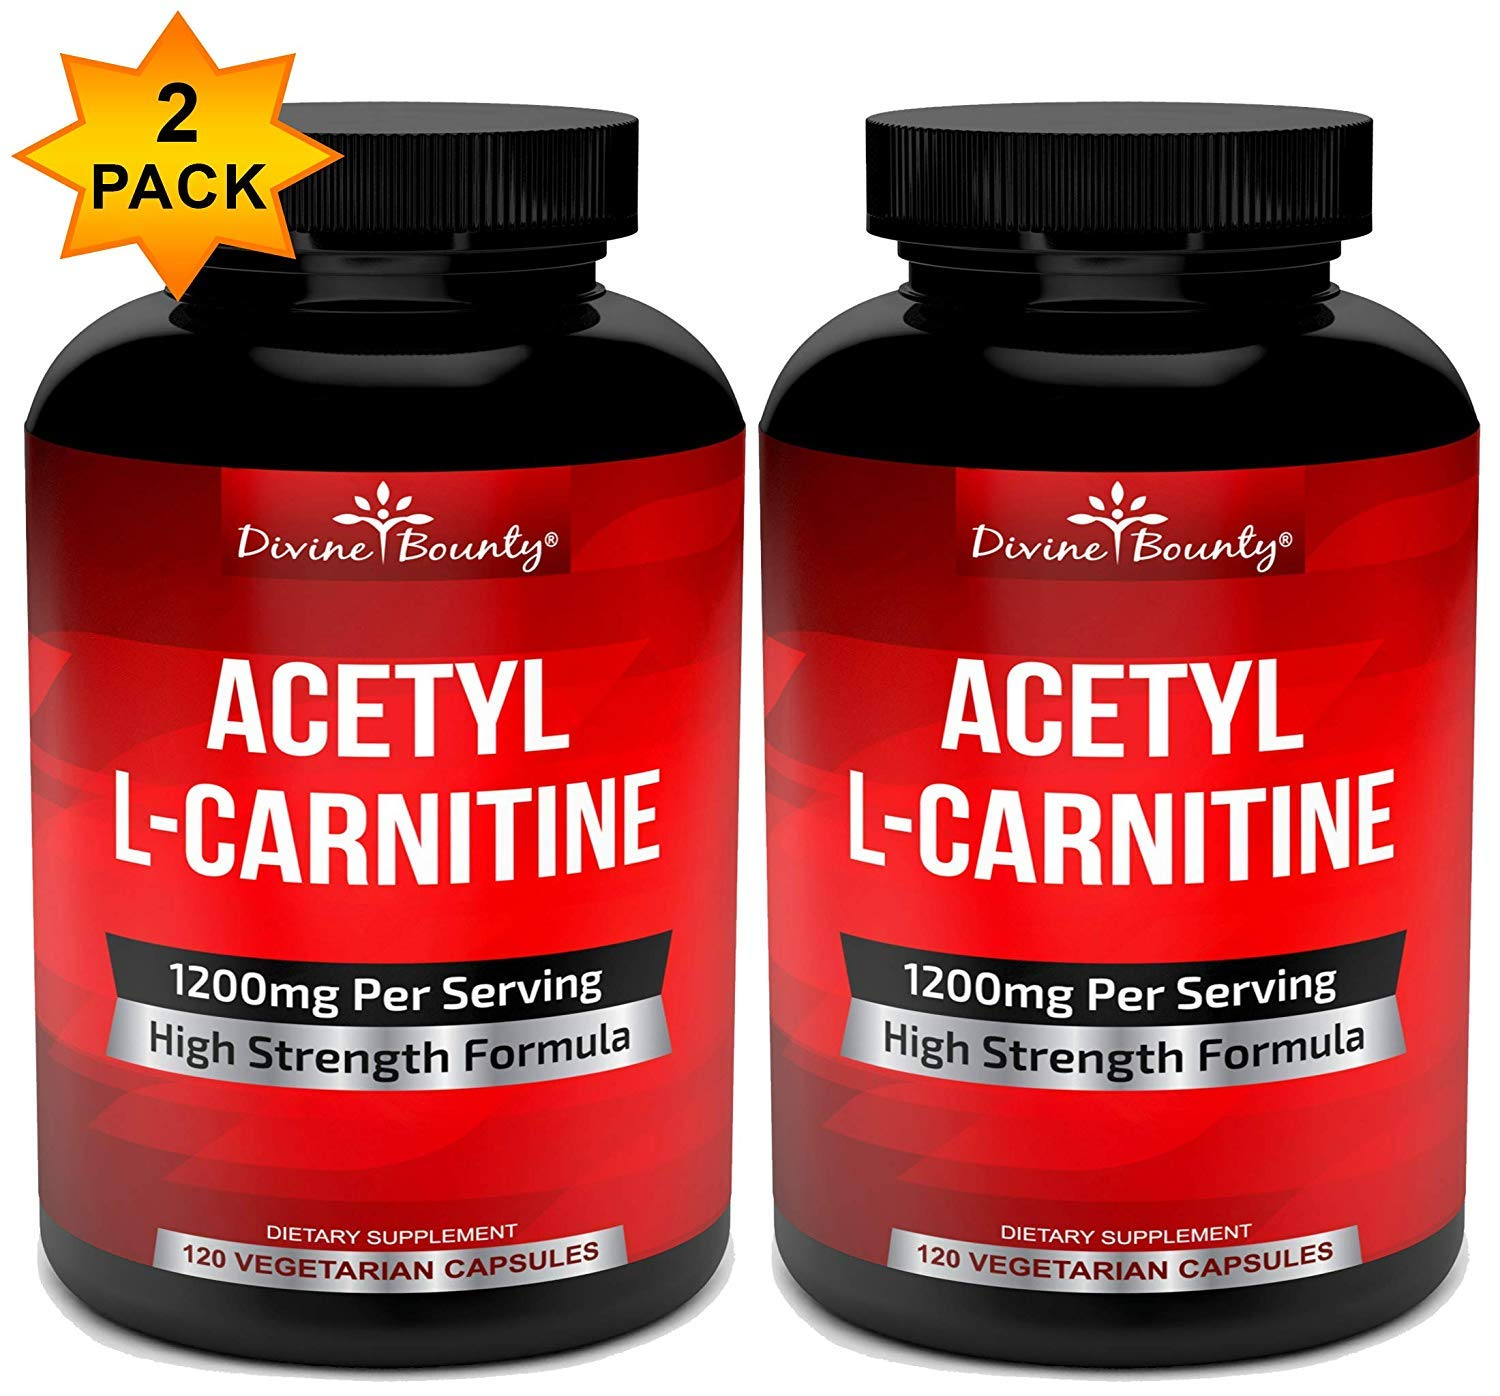 Vitamin Supplements Capsules Multi-Pack - Acetyl L Carnitine - Pack of 2 Bottles